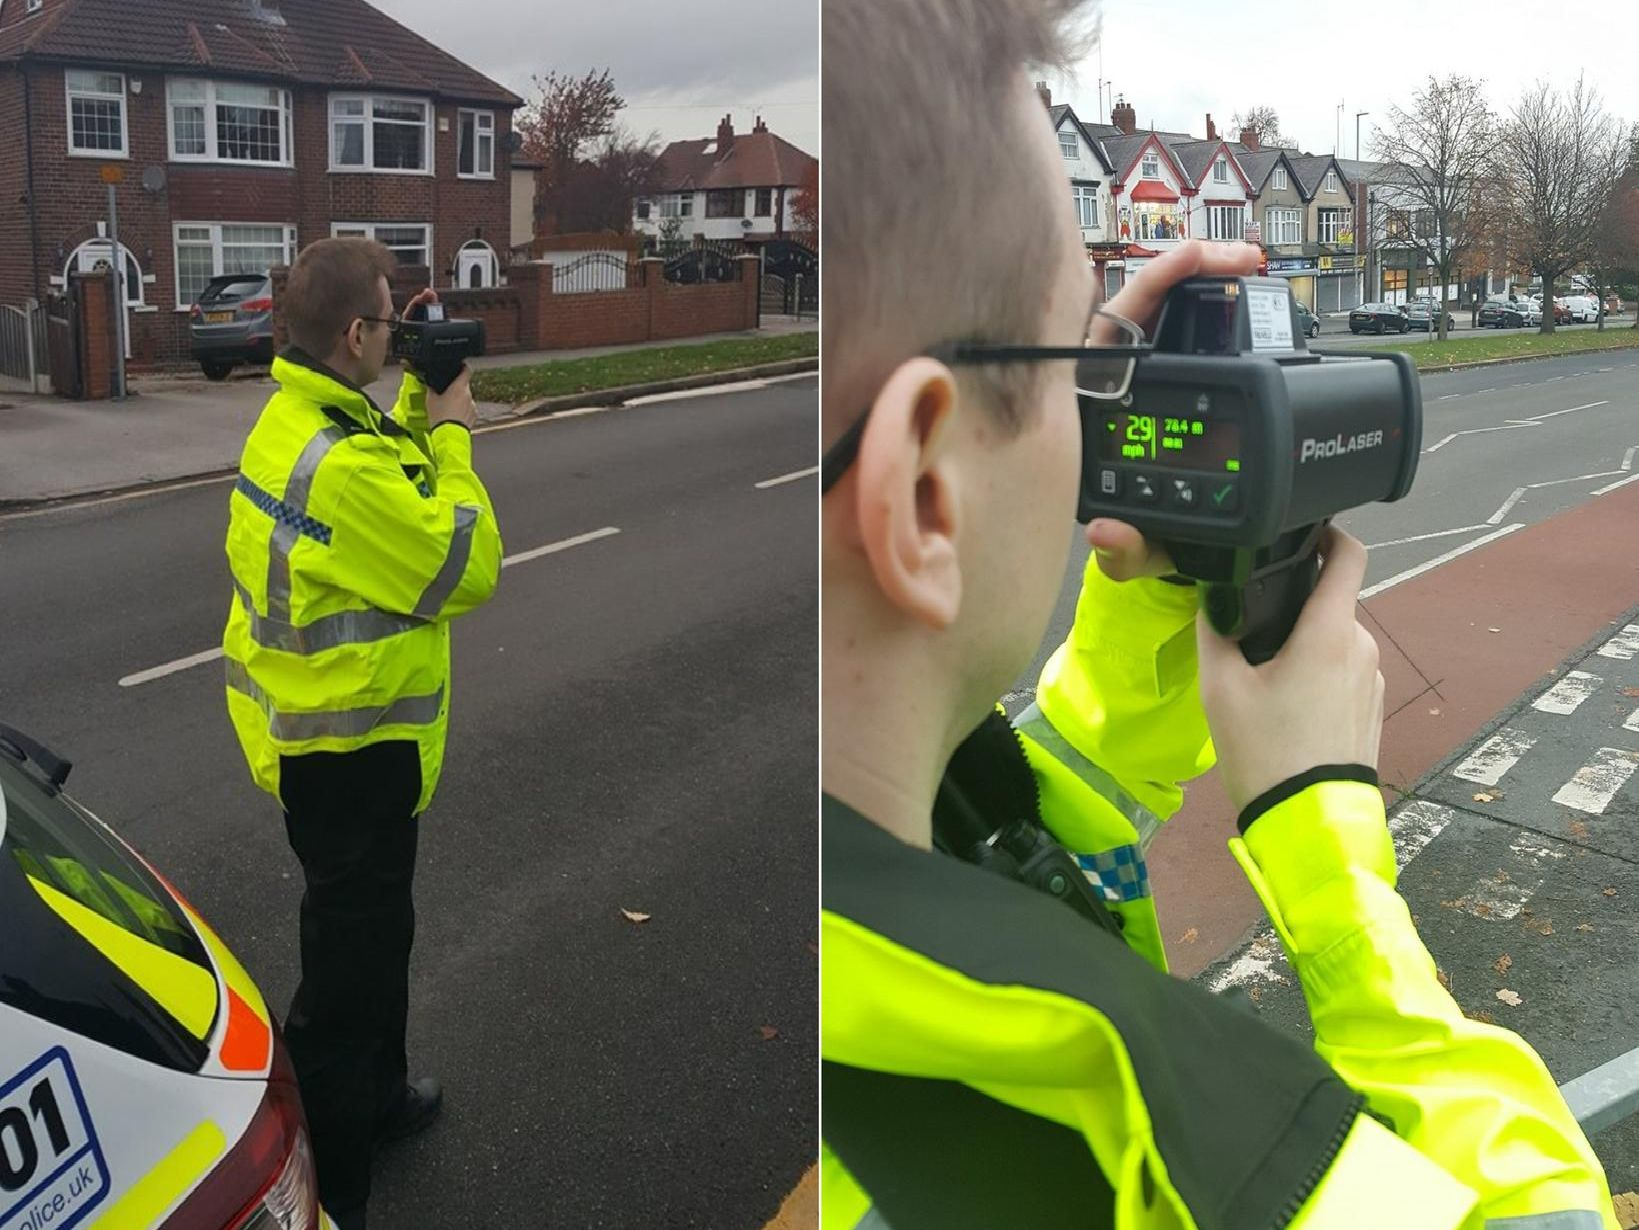 Mobile speed camera locations.